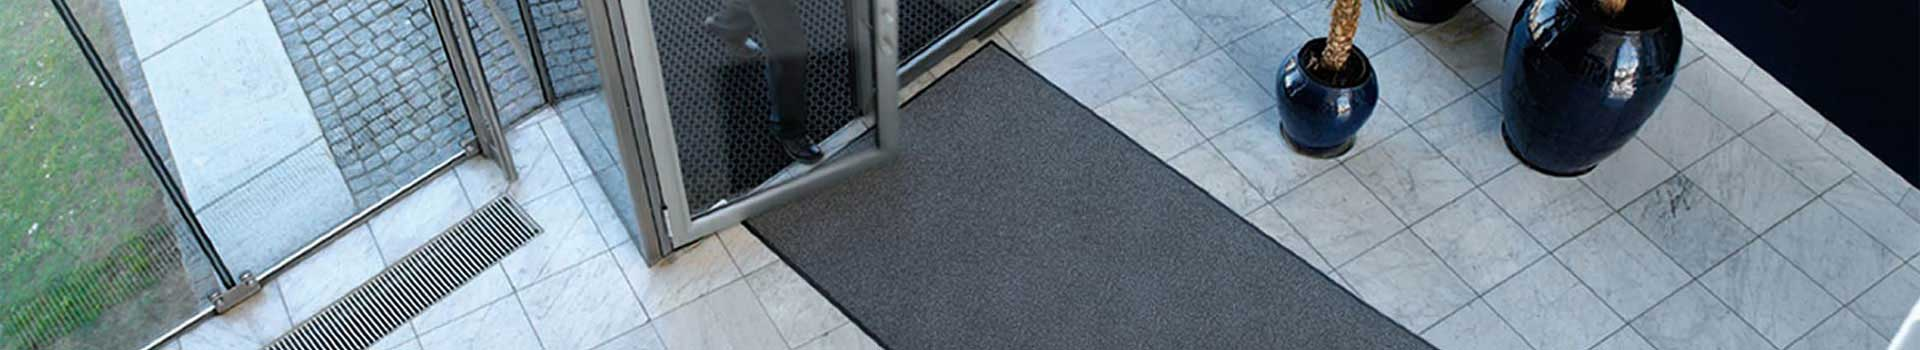 Commercial Serviced Logo Mats